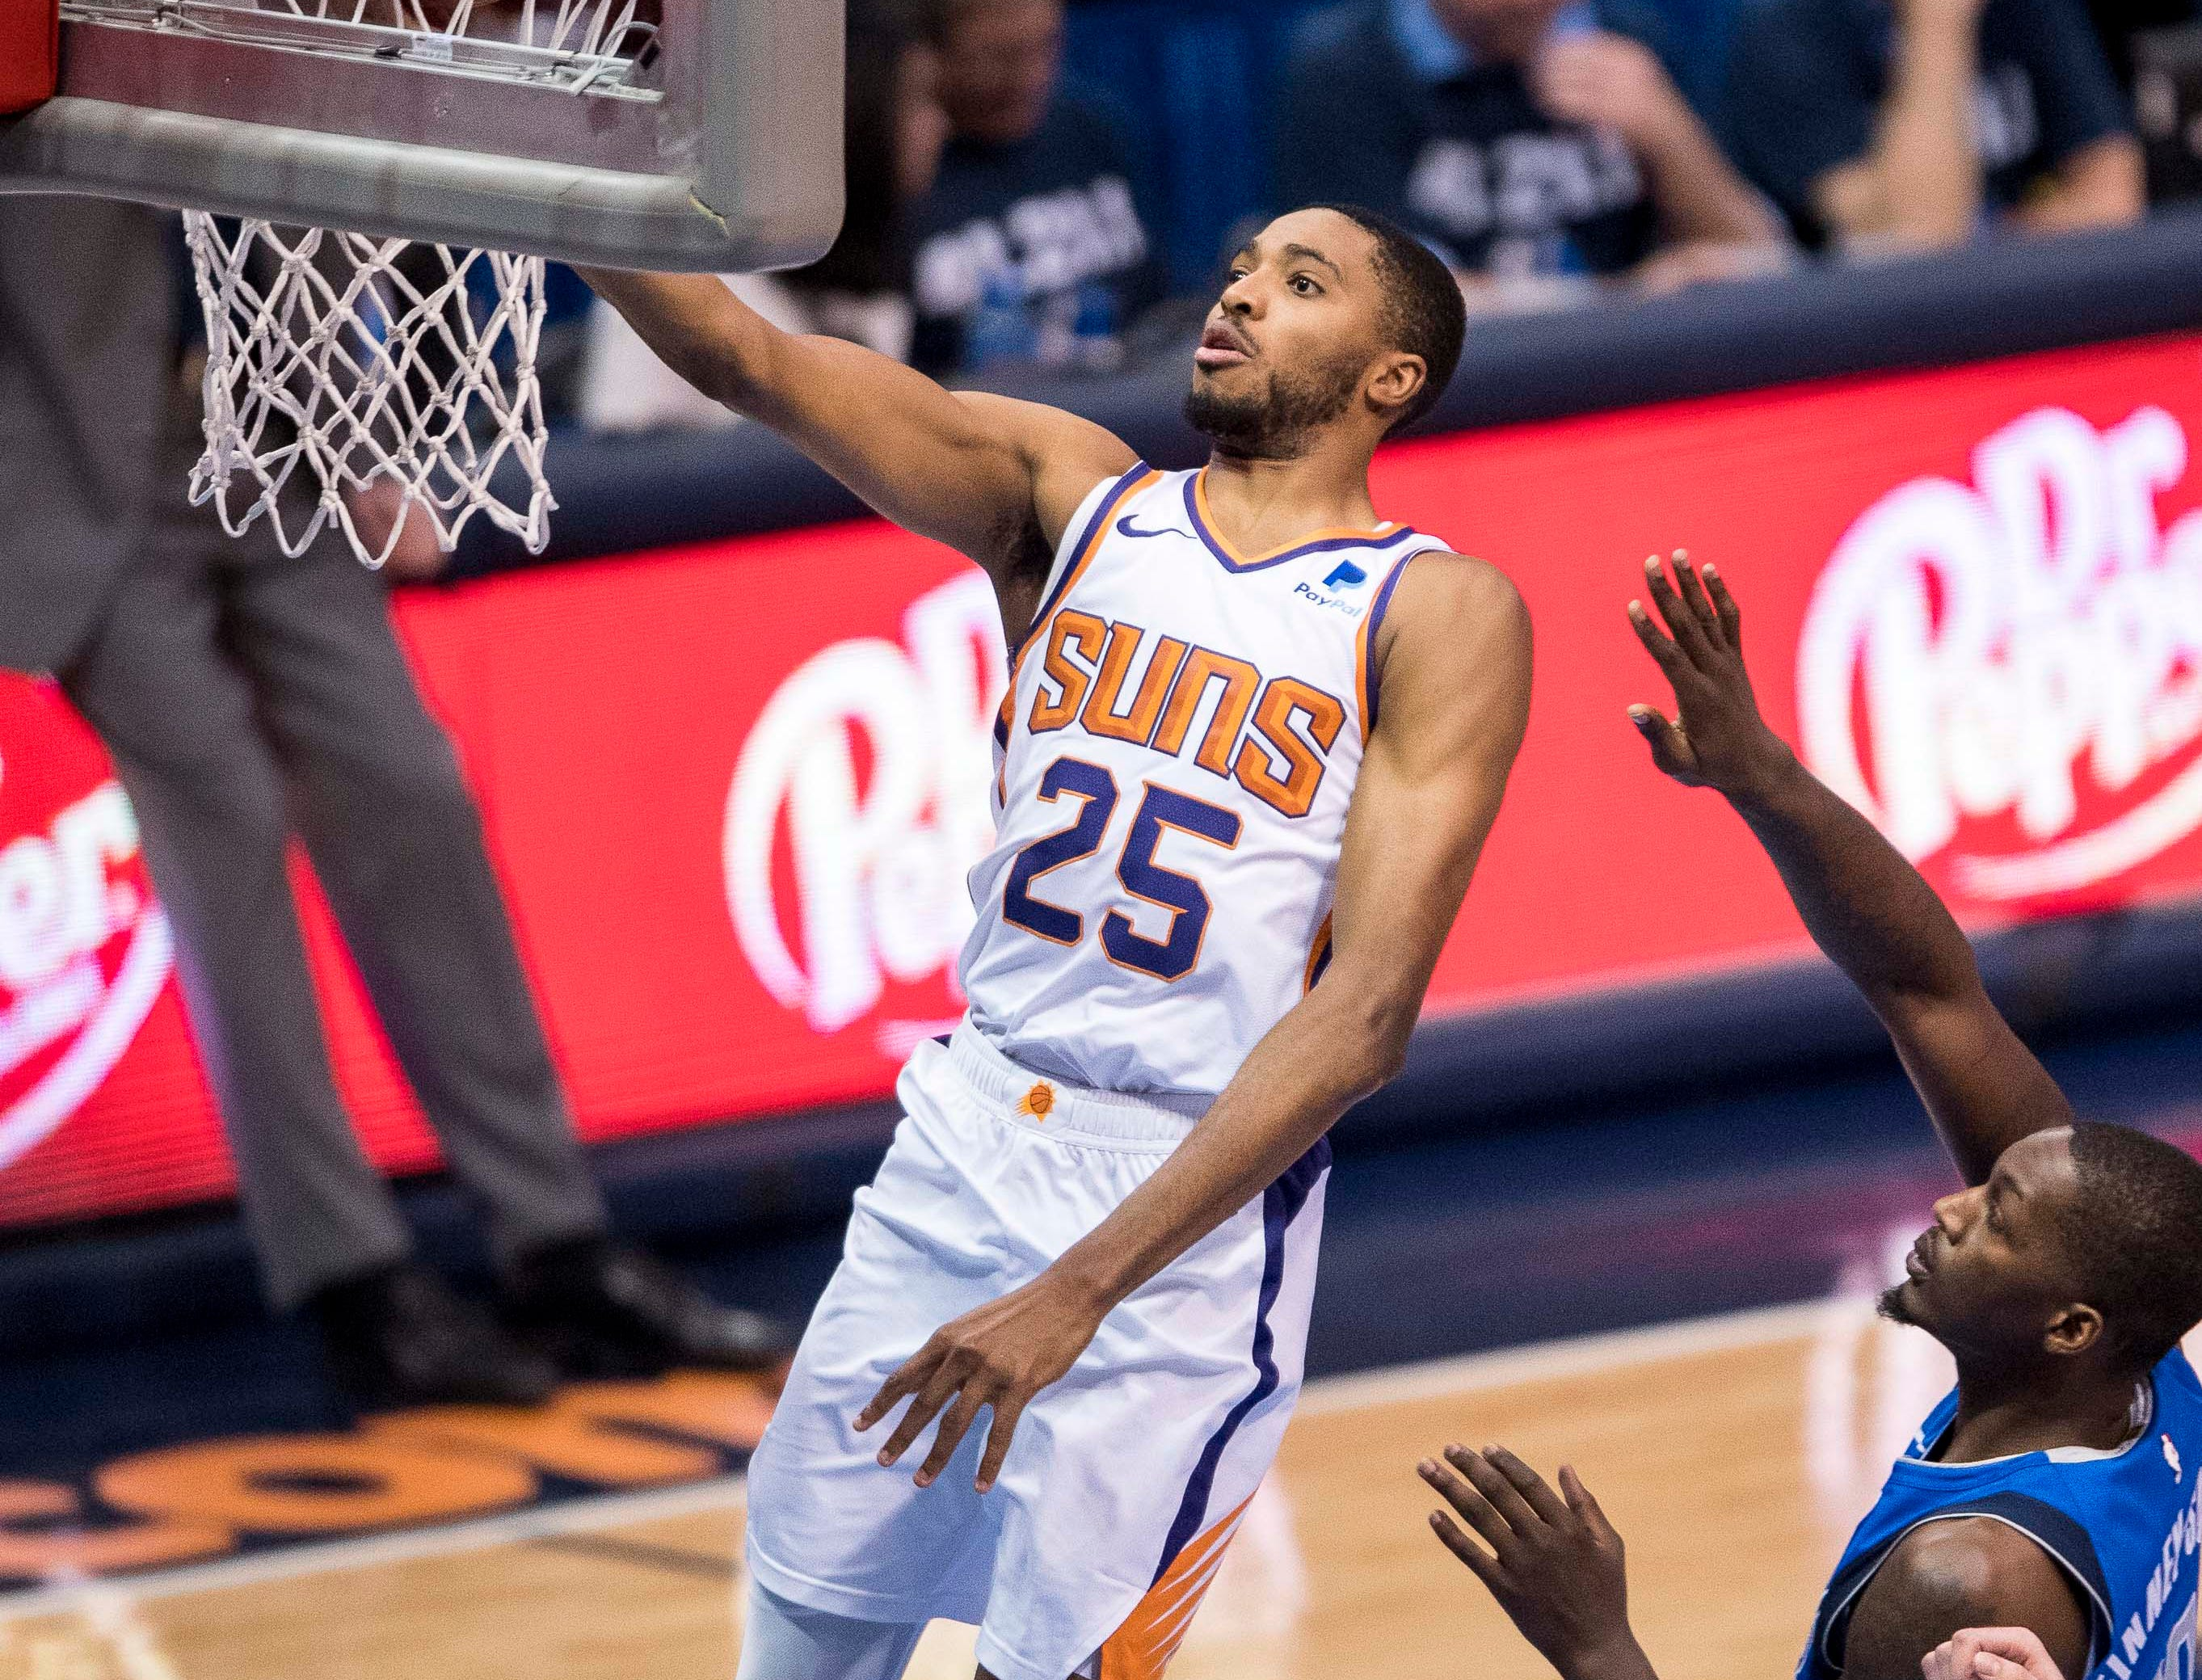 Apr 9, 2019; Dallas, TX, USA; Phoenix Suns forward Mikal Bridges (25) drives to the basket against Dallas Mavericks forward Dorian Finney-Smith (10) during the second half at the American Airlines Center. Mandatory Credit: Jerome Miron-USA TODAY Sports